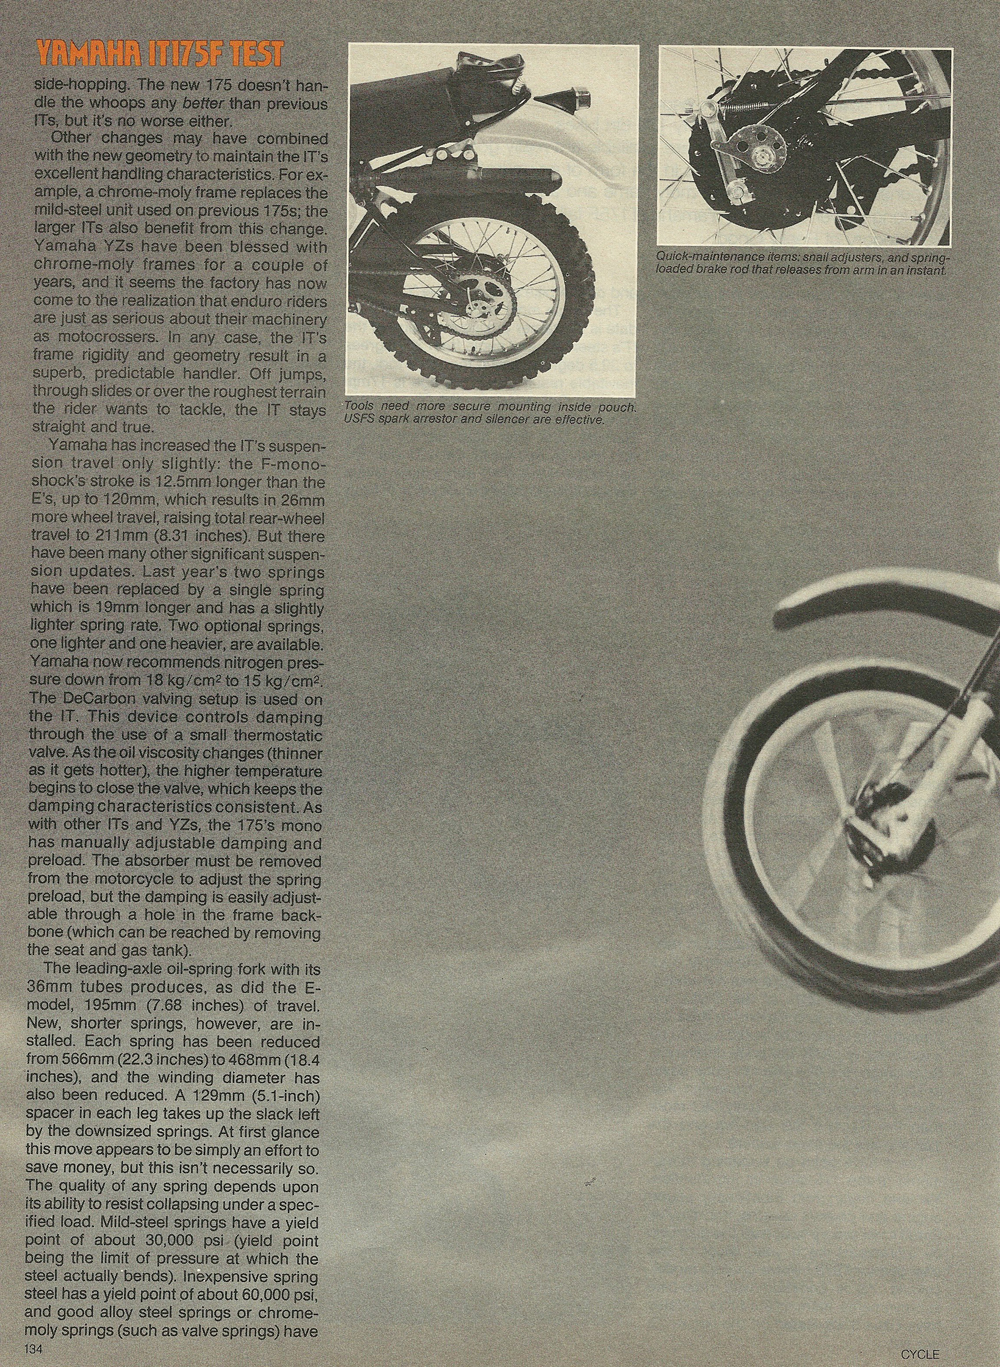 1979 Yamaha IT175F off road test 3.jpg